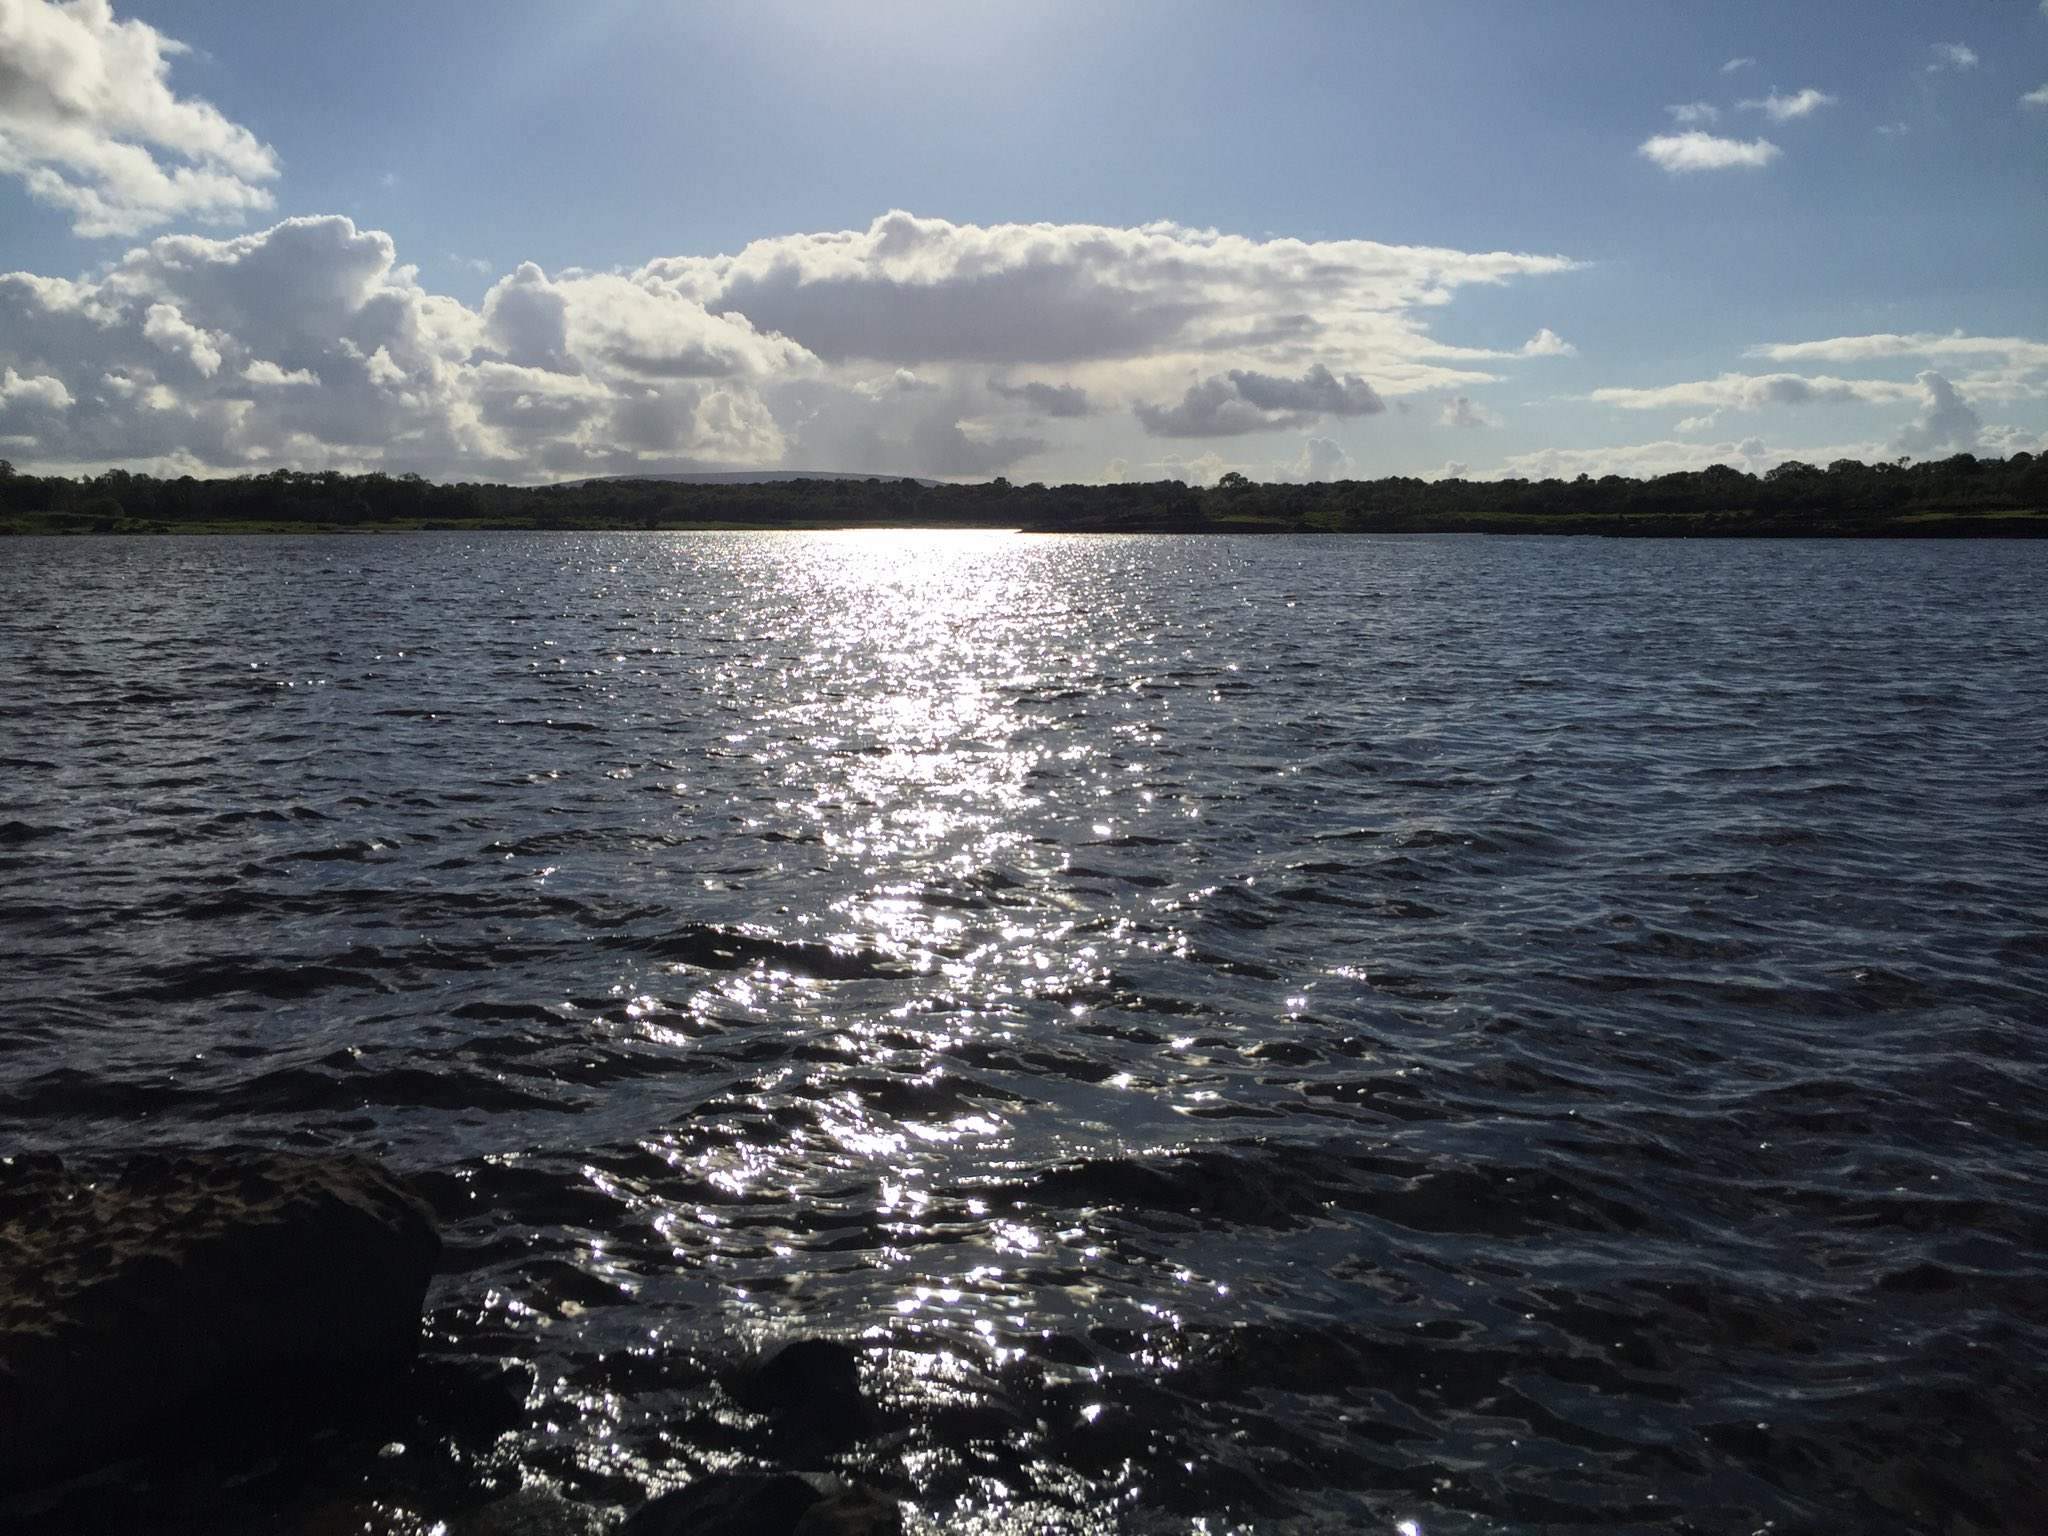 Water Monster at Coole Lake in Galway - Visit Galway